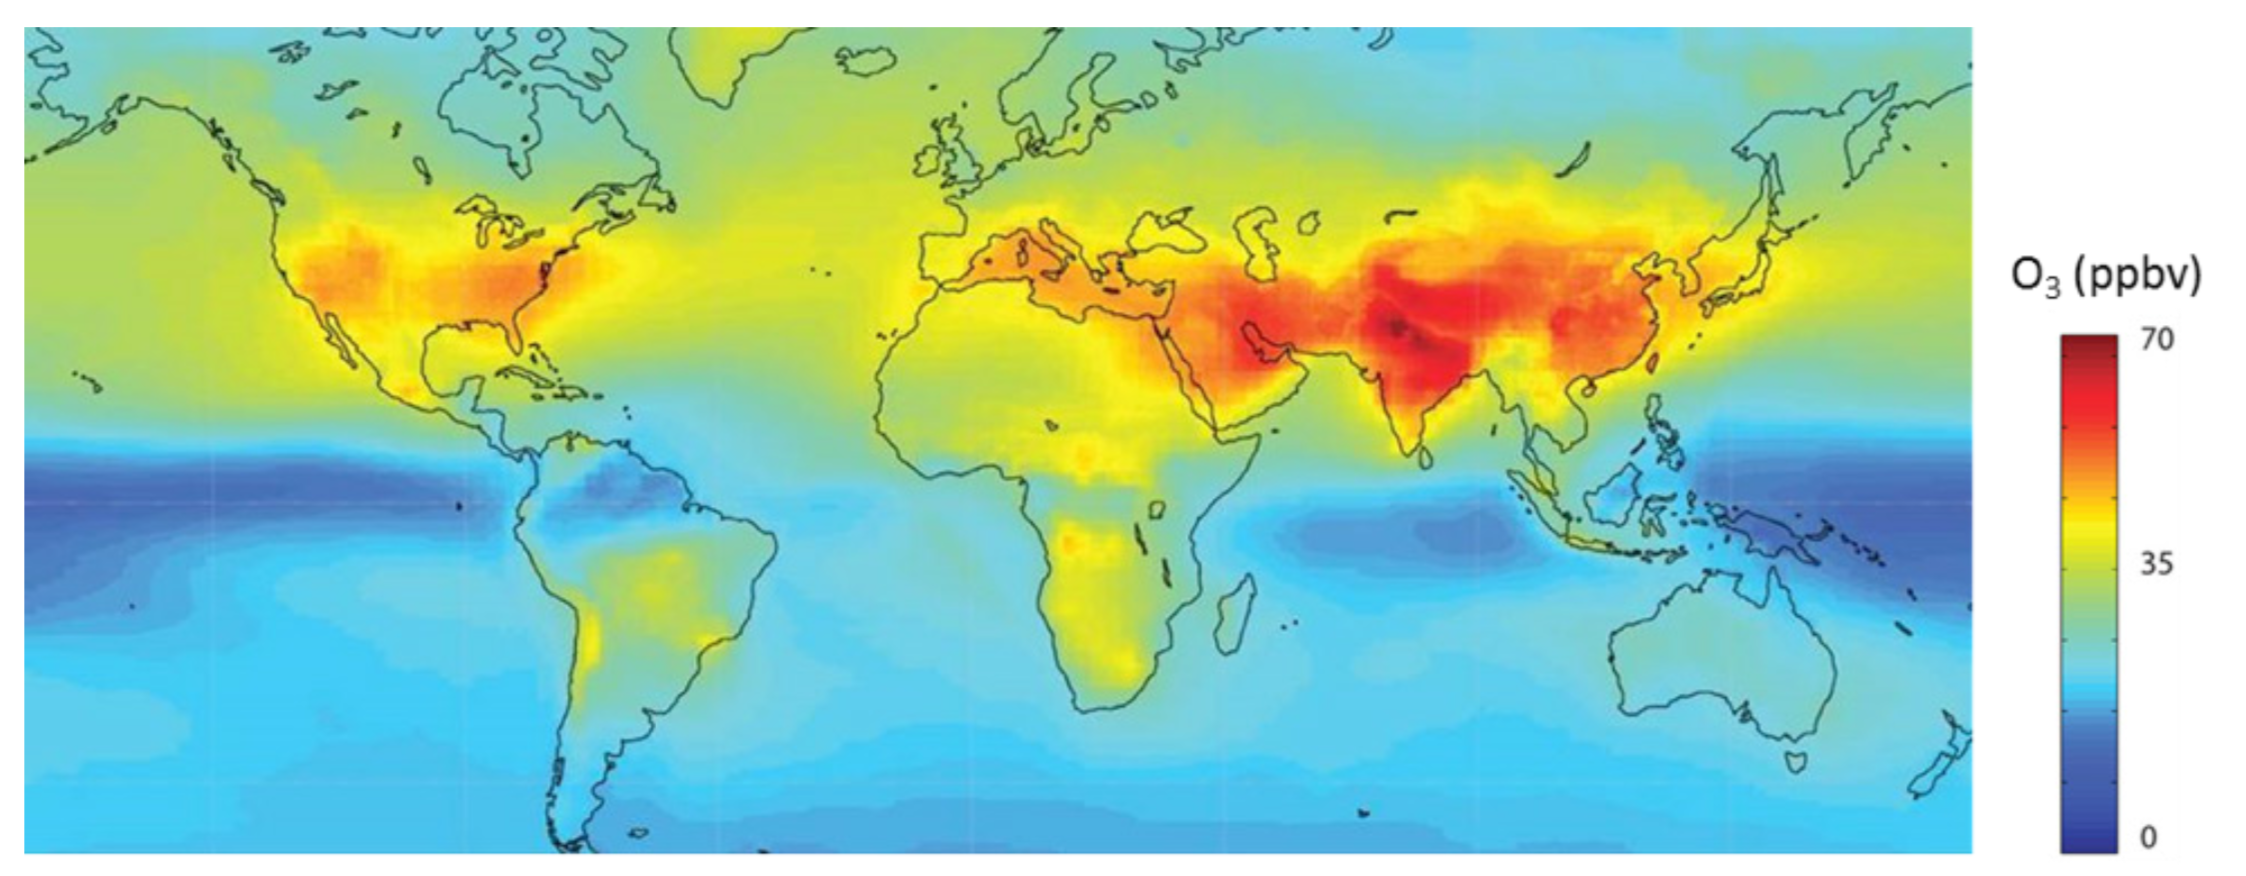 Surface ozone concentrations in 2010